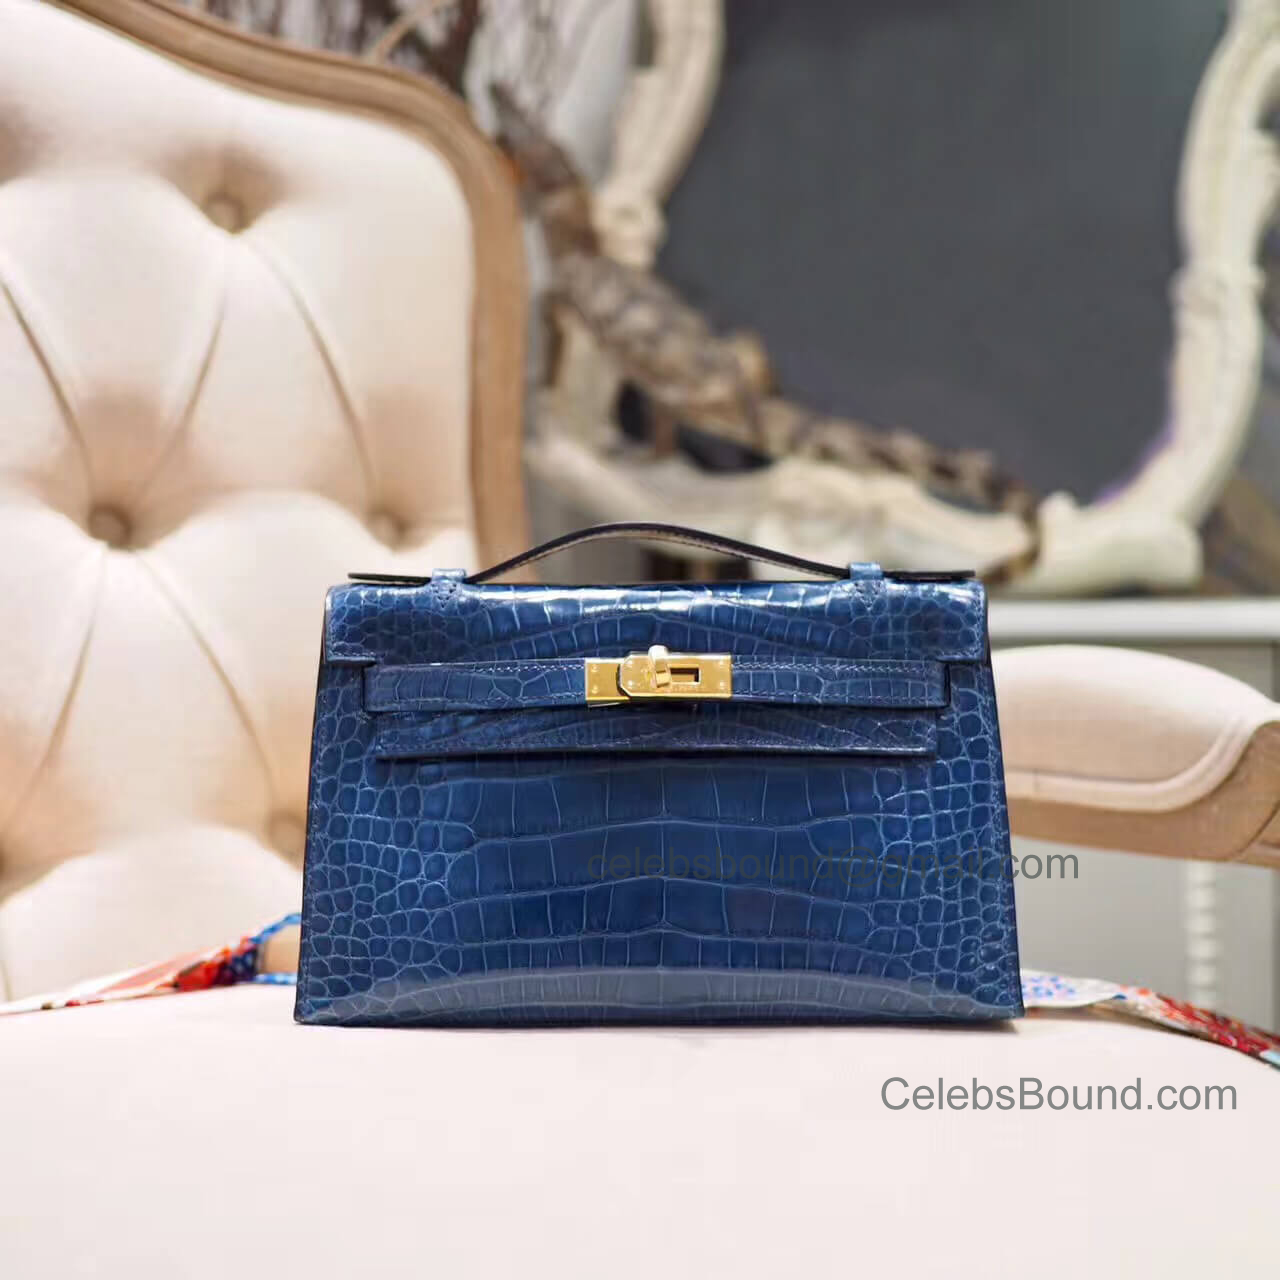 Replica Hermes Mini Kelly 22 Pochette Bag in 7a Blue Roy Shiny Alligator GHW